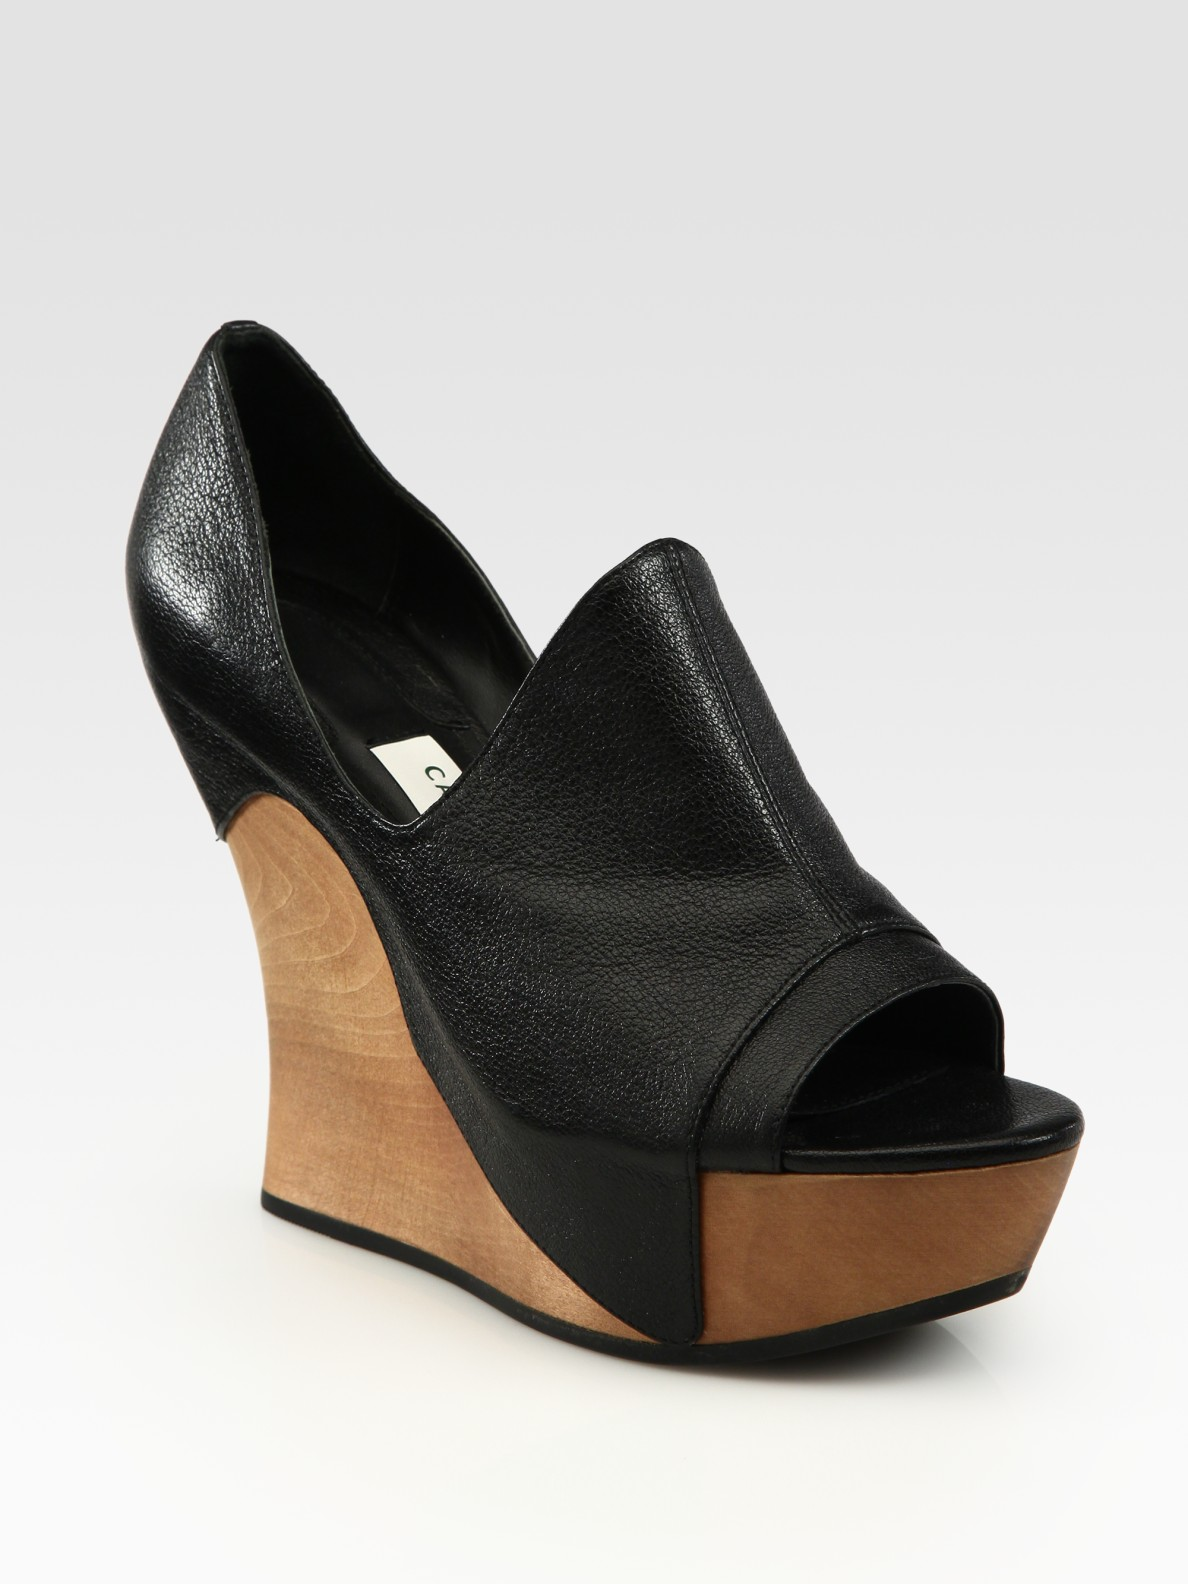 camilla skovgaard tanganica leather wood wedge platform